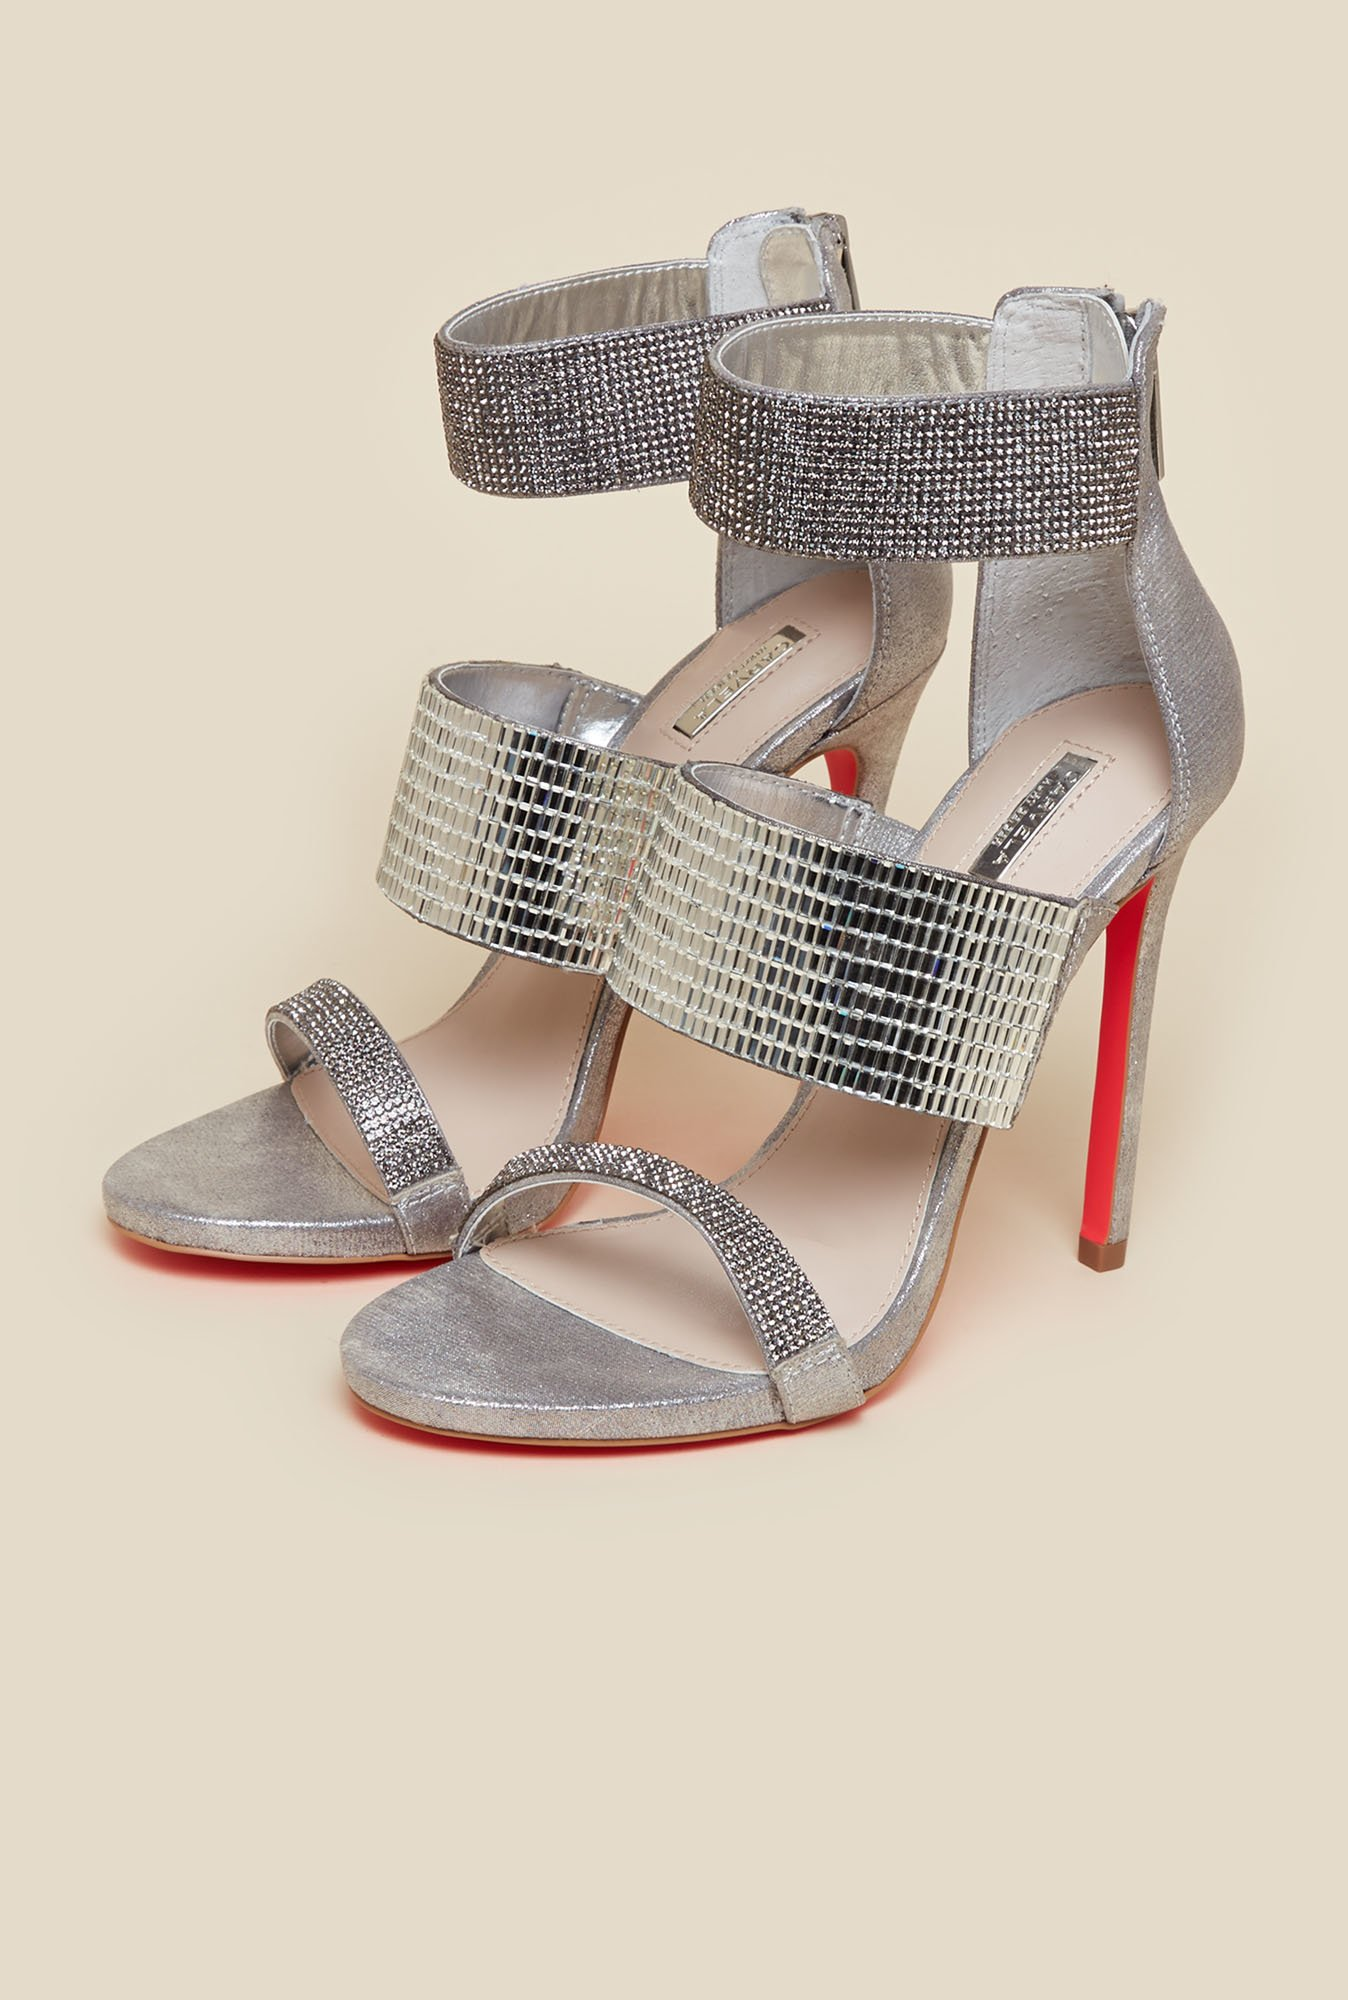 Carvela by Kurt Geiger Silver Globe Sandals